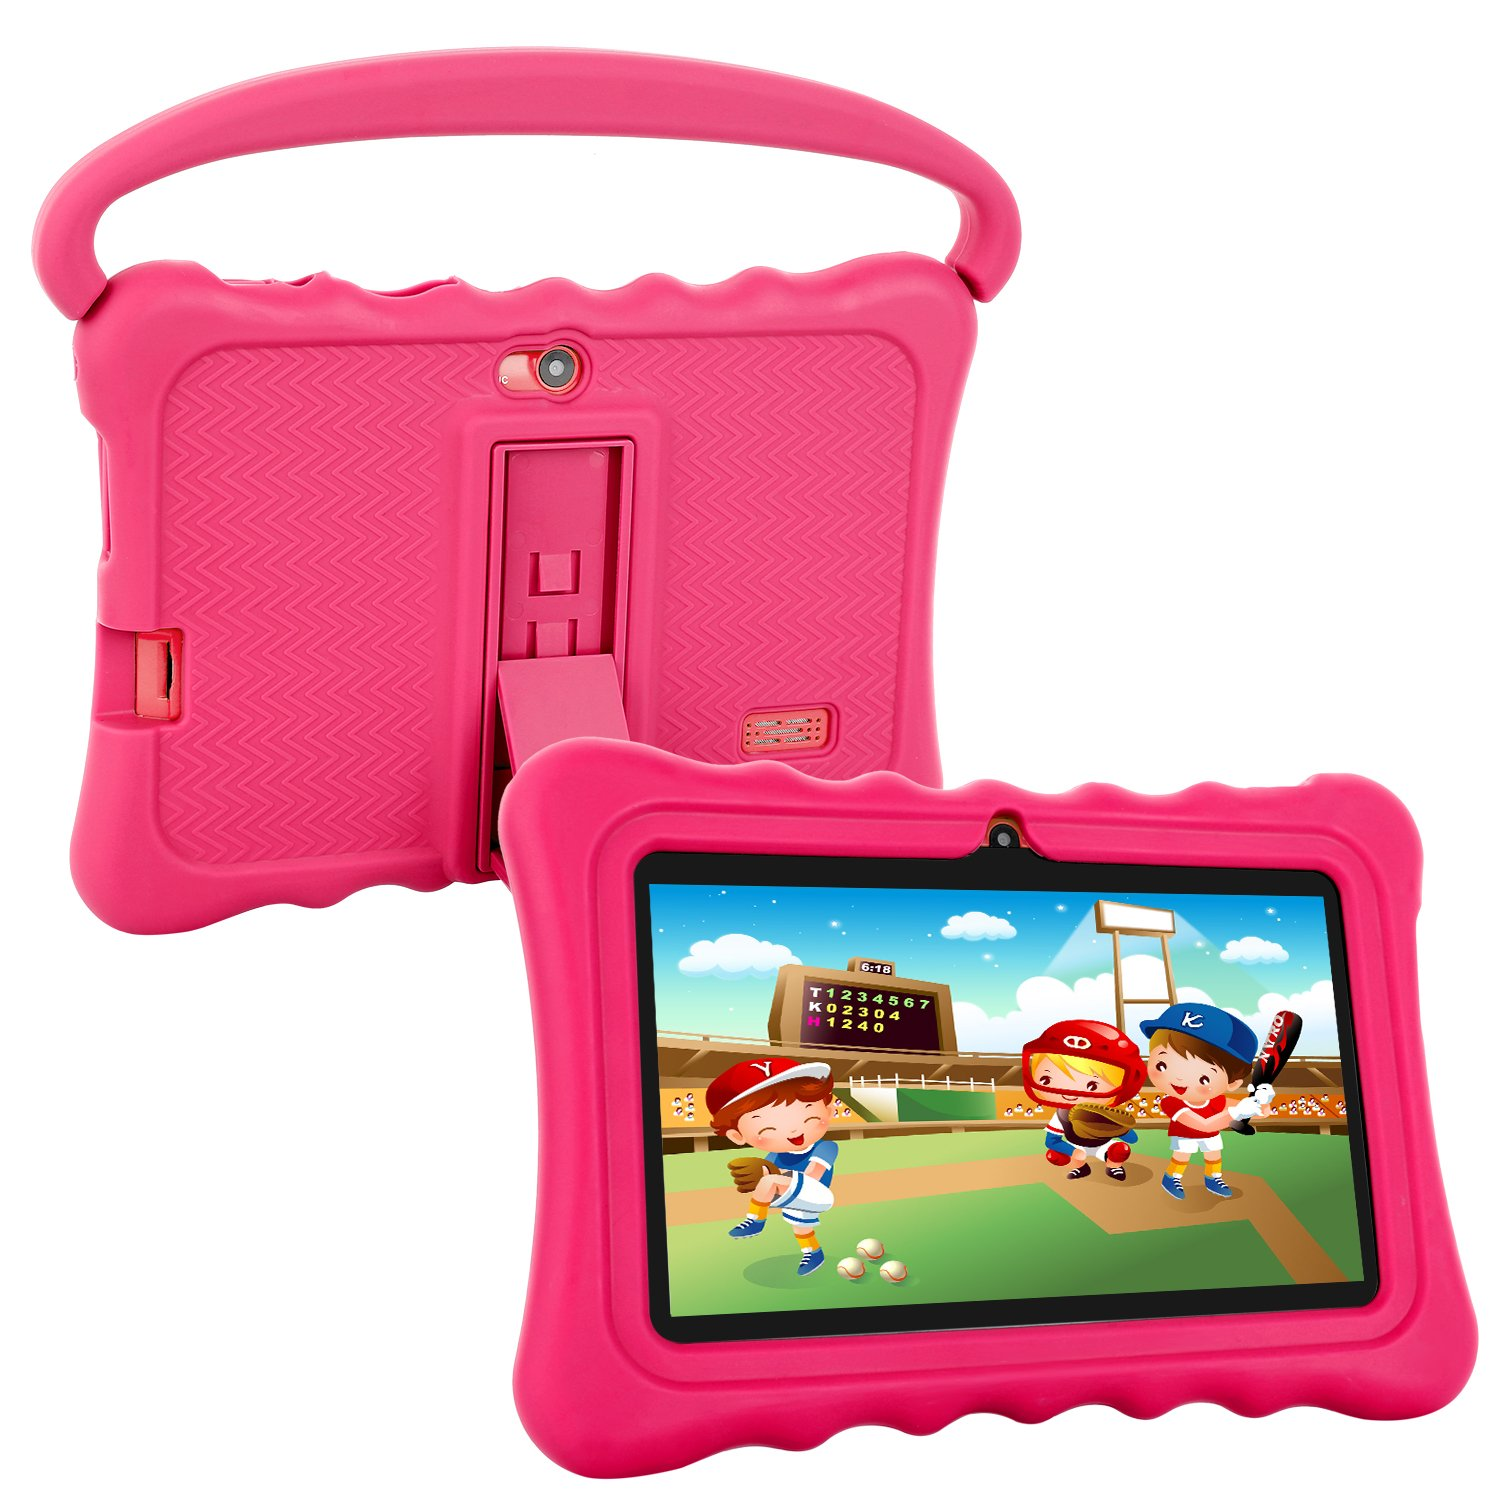 Kids Tablet,Auto Beyond 7 inch Tablet for Kids,Google Android 6.0 with Handle Silicone Case,per-Installed iWawaHome and AR Zoo APP Games,IPS Display Screen,Playstore,1GB+8GB,Wi-Fi,Bluetooth (Pink)